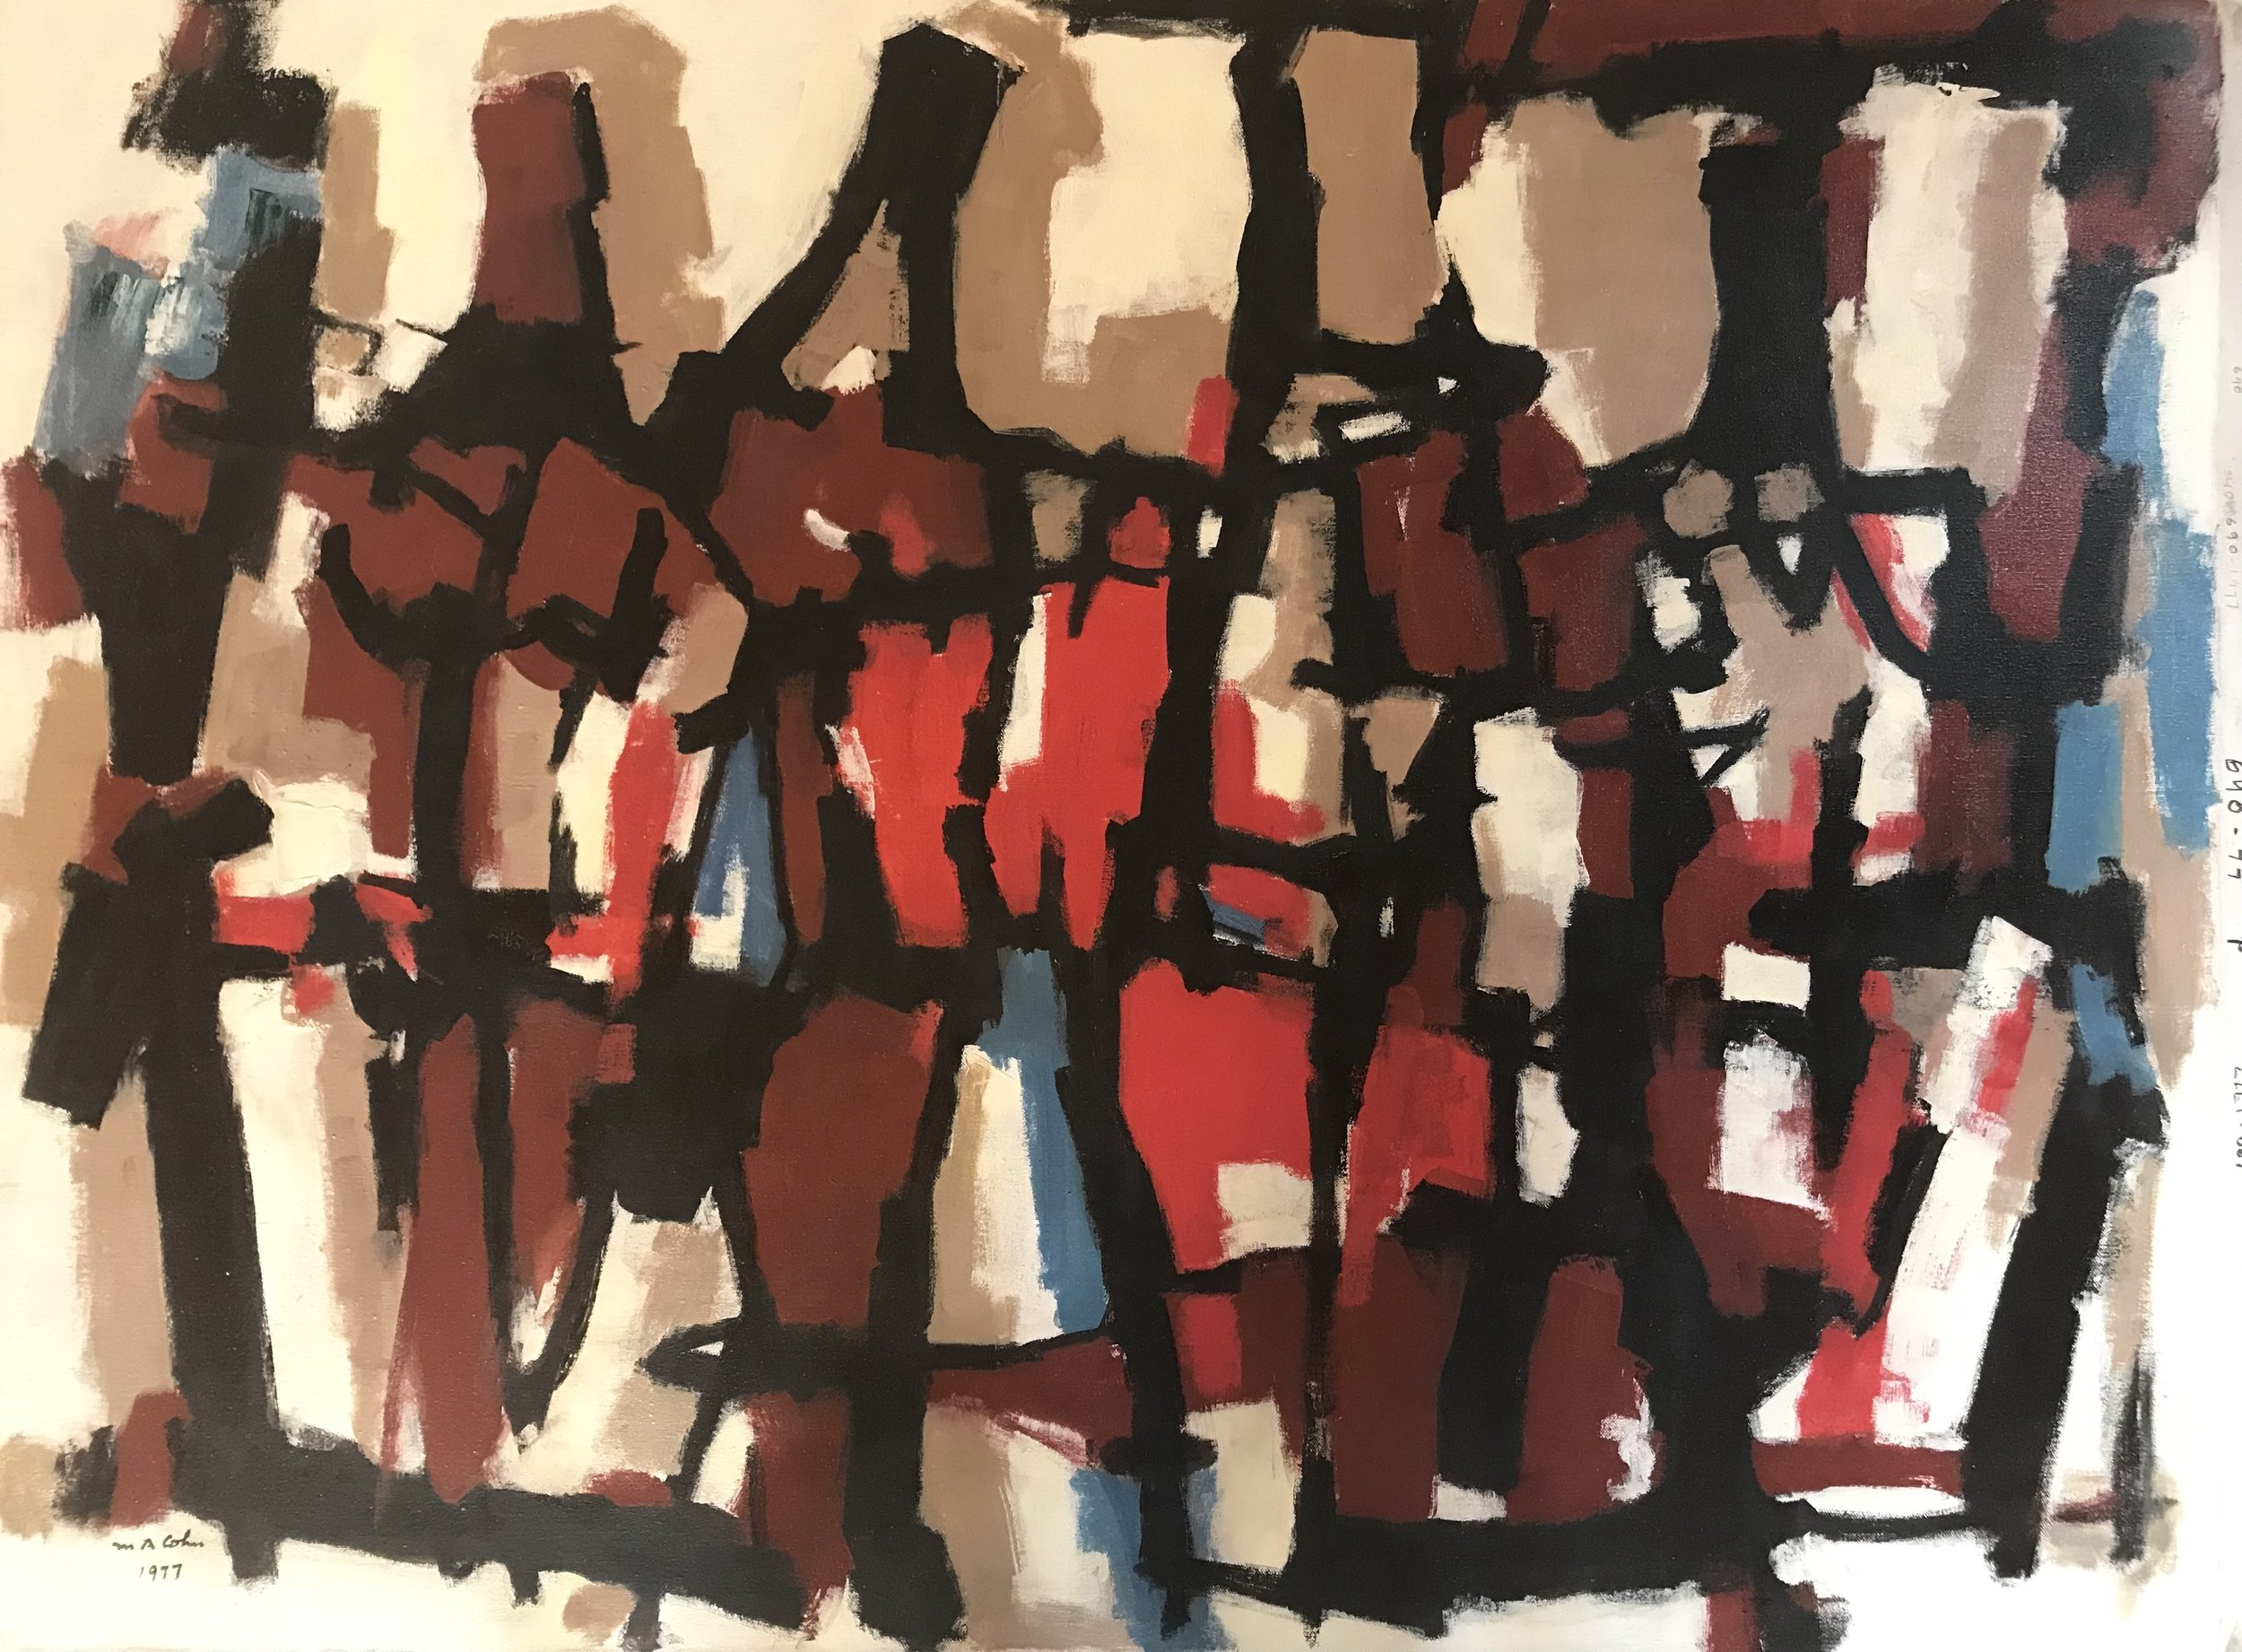 "Abstract Figures 690-1977 by Max Arthur Cohn 30"" x 40"" Oil on Canvas 1977"